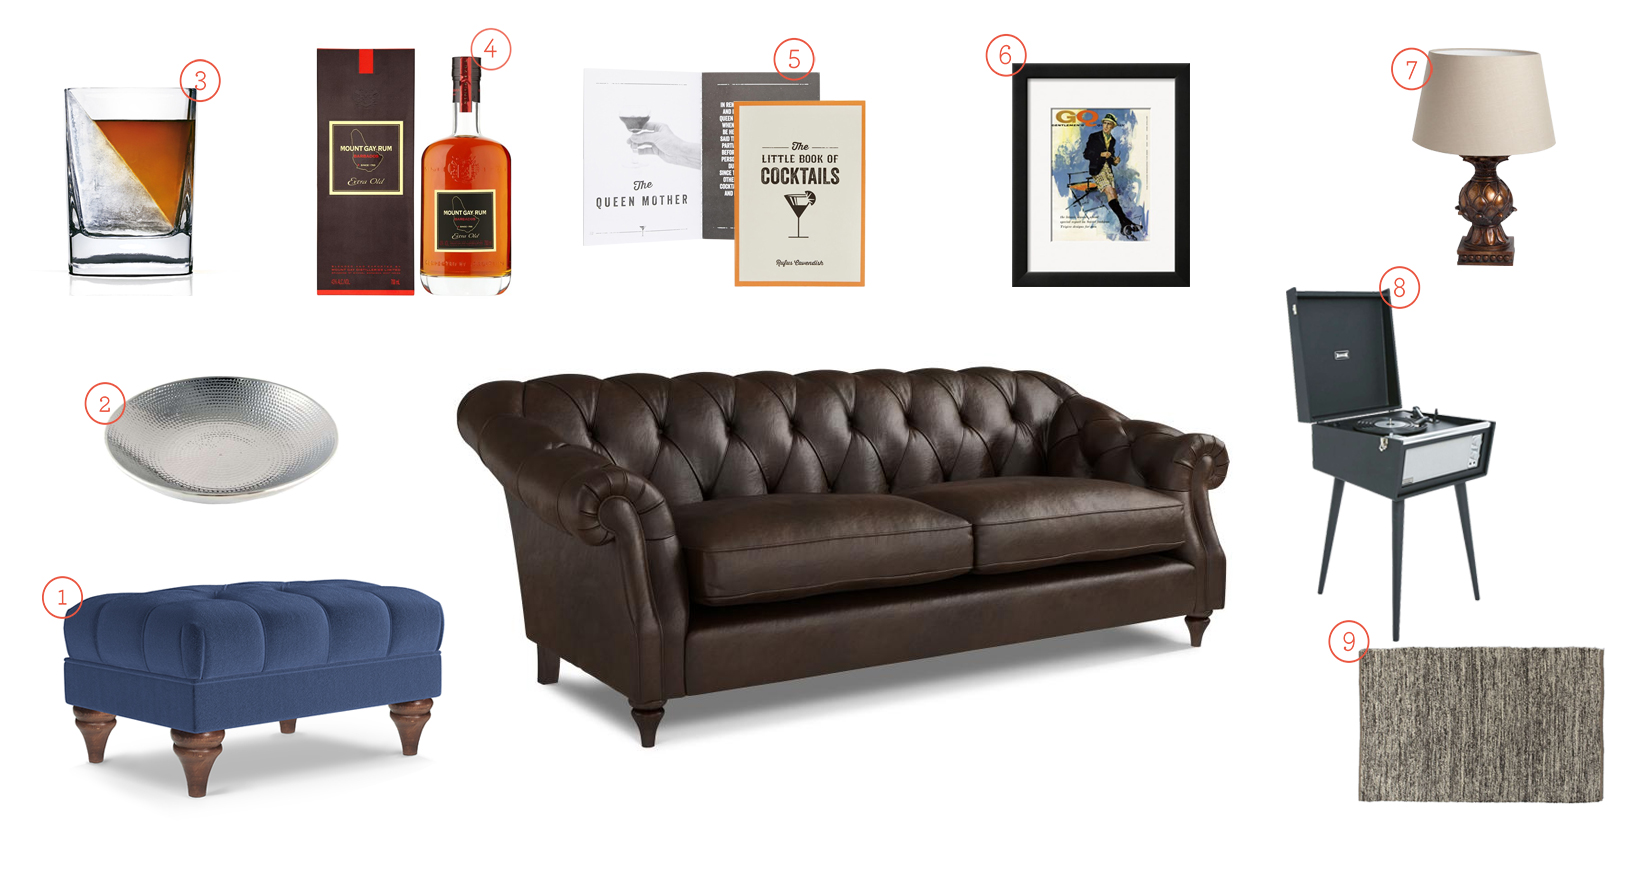 Get The Look - Brown Leather Darcy